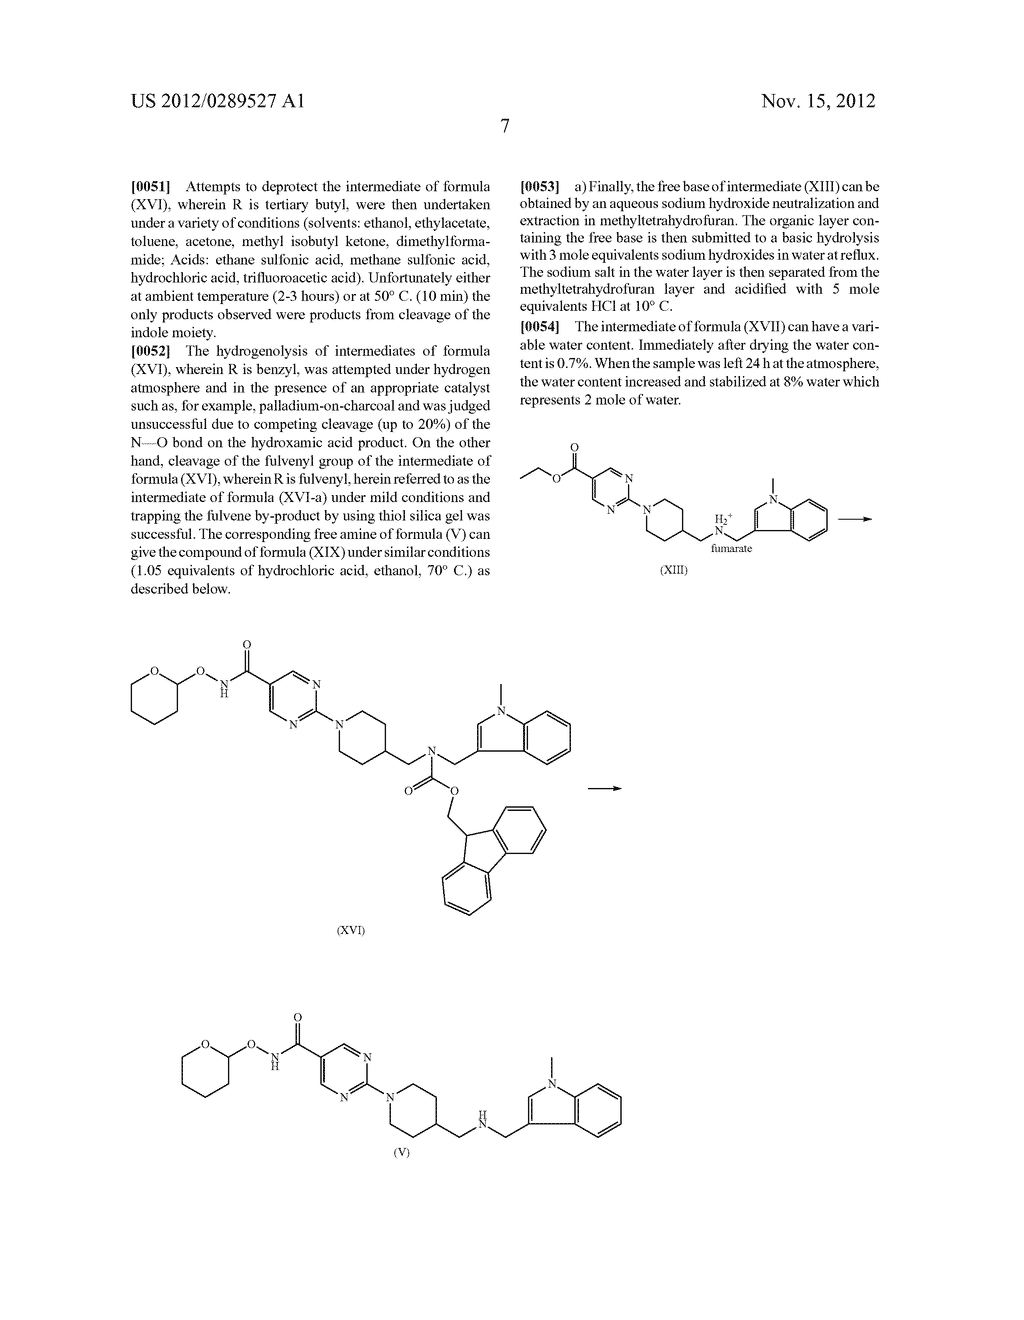 MONO-HYDROCHLORIC SALTS OF AN INHIBITOR OF HISTONE DEACETYLASE - diagram, schematic, and image 24